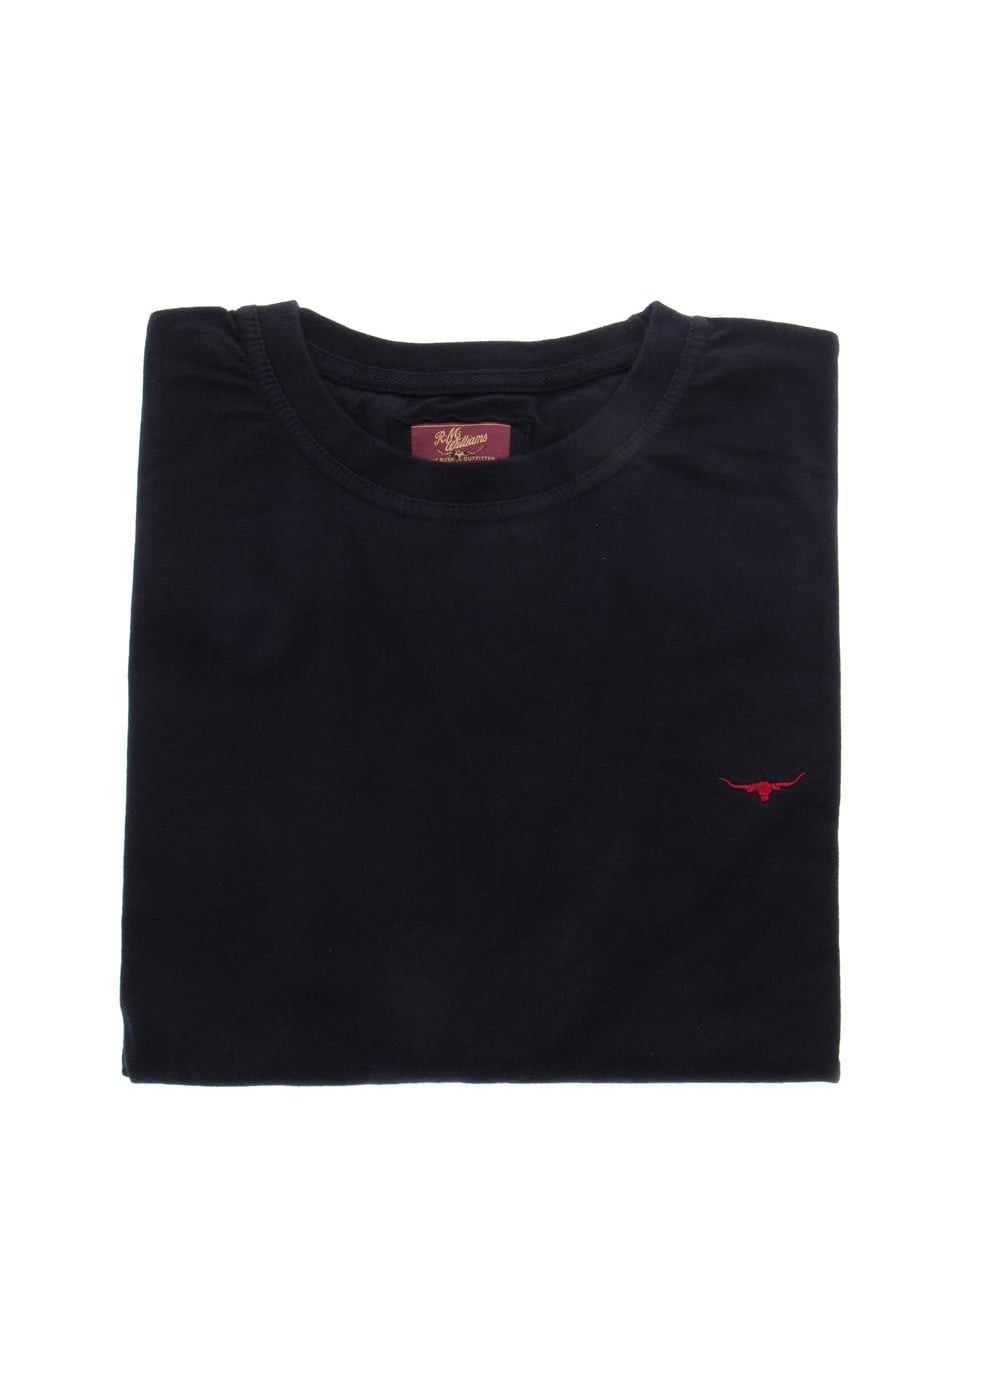 RM Williams Logo Embroidered T Shirt Large Image